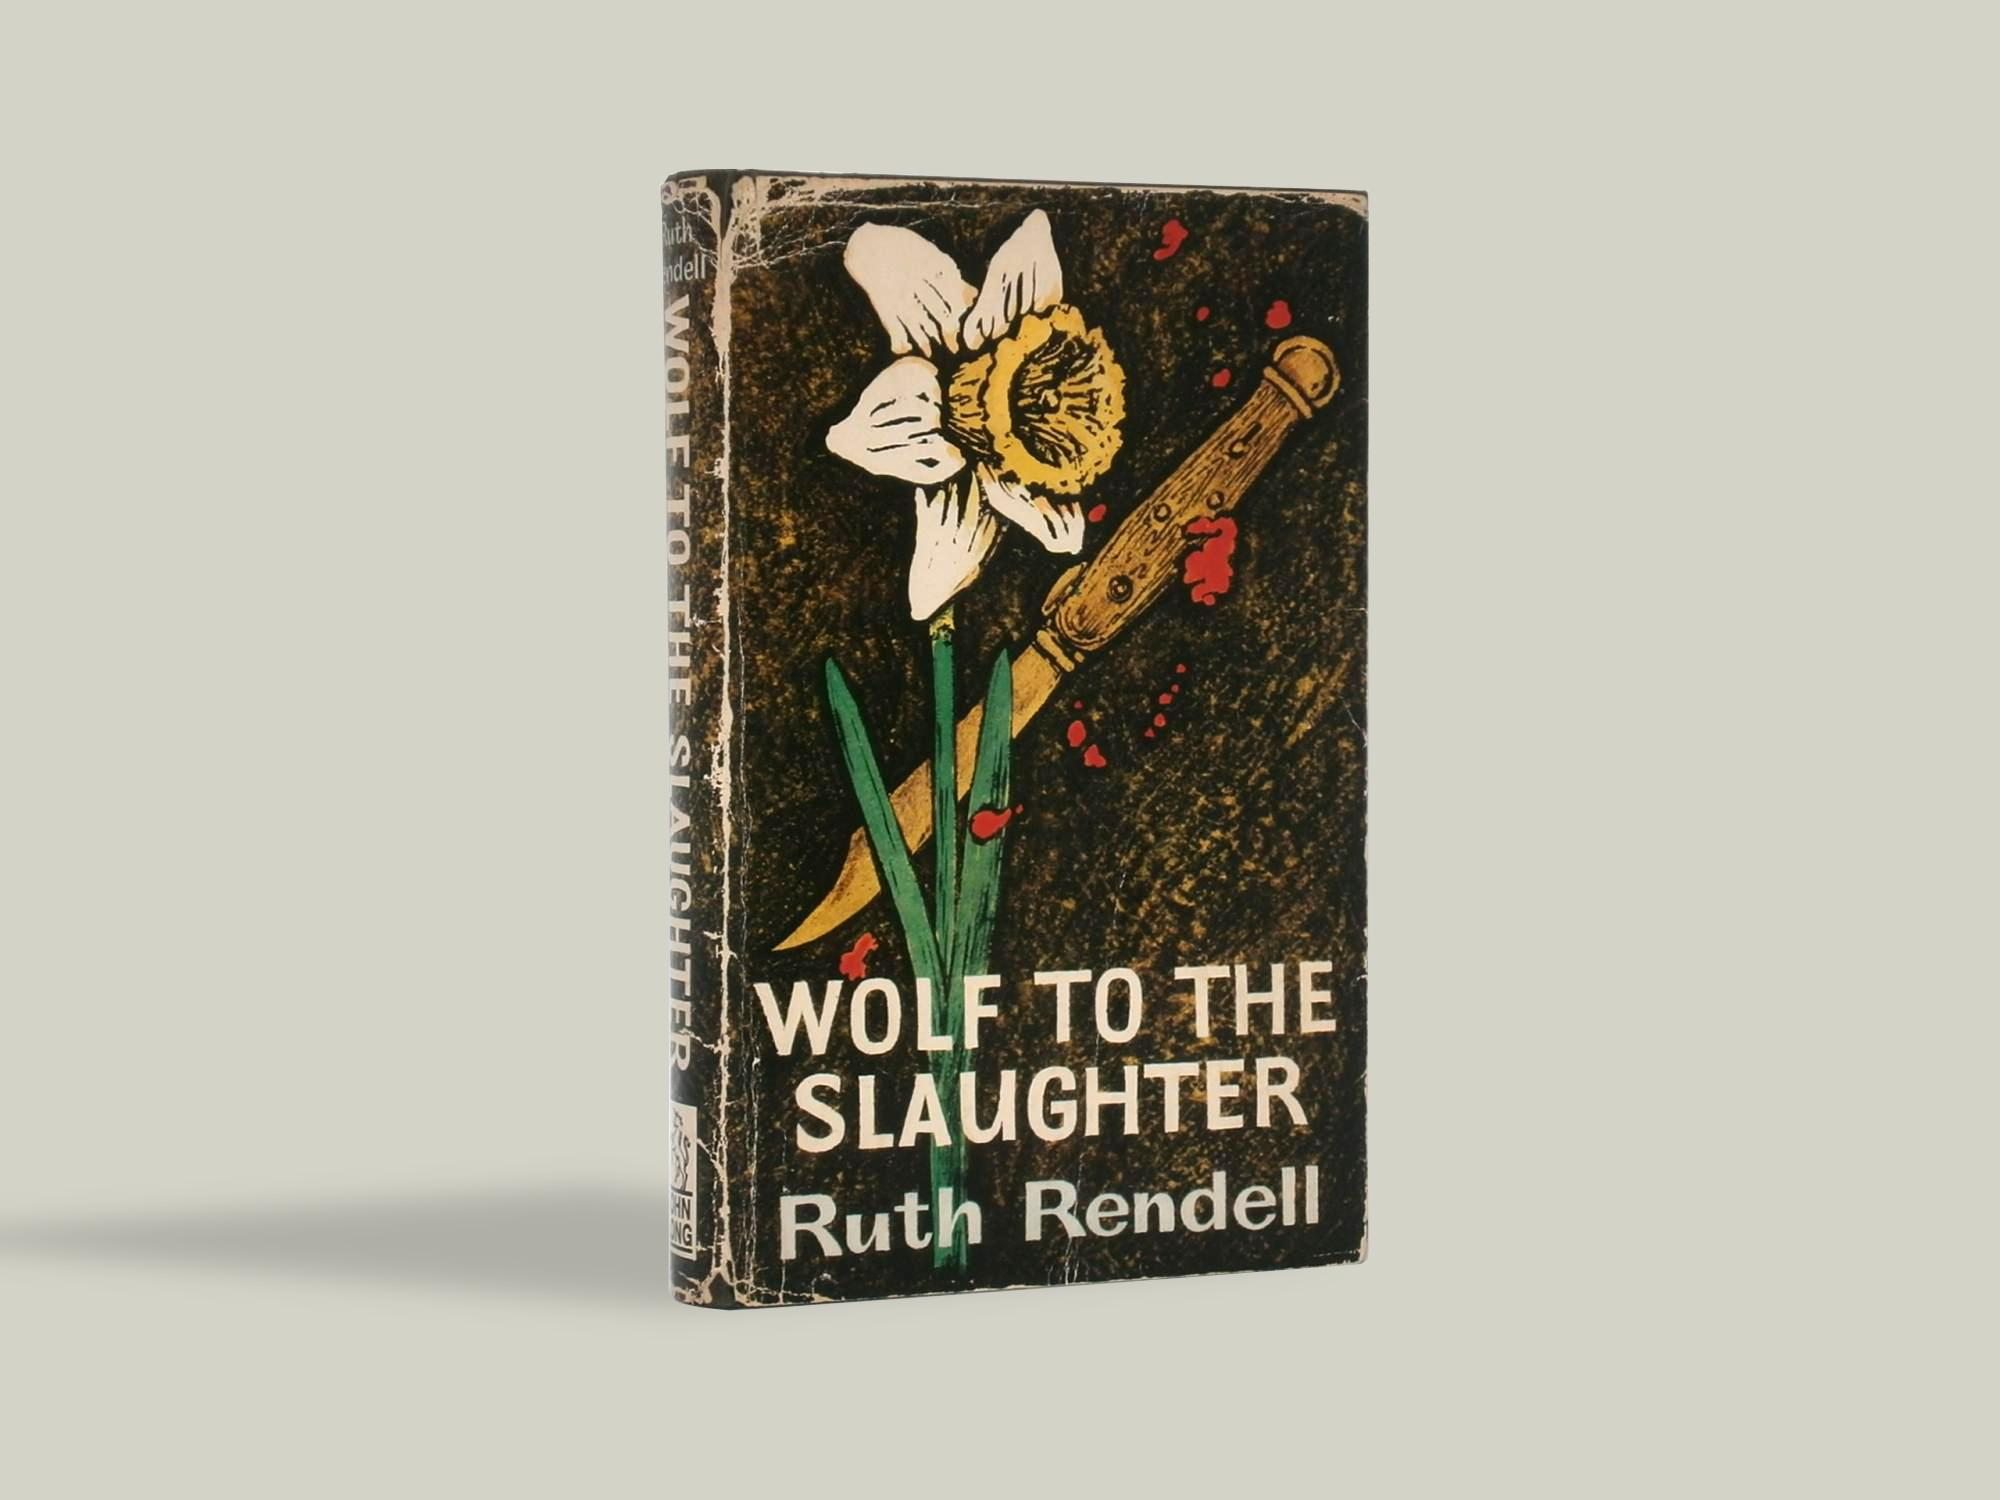 wolf to the slaughter rendell ruth